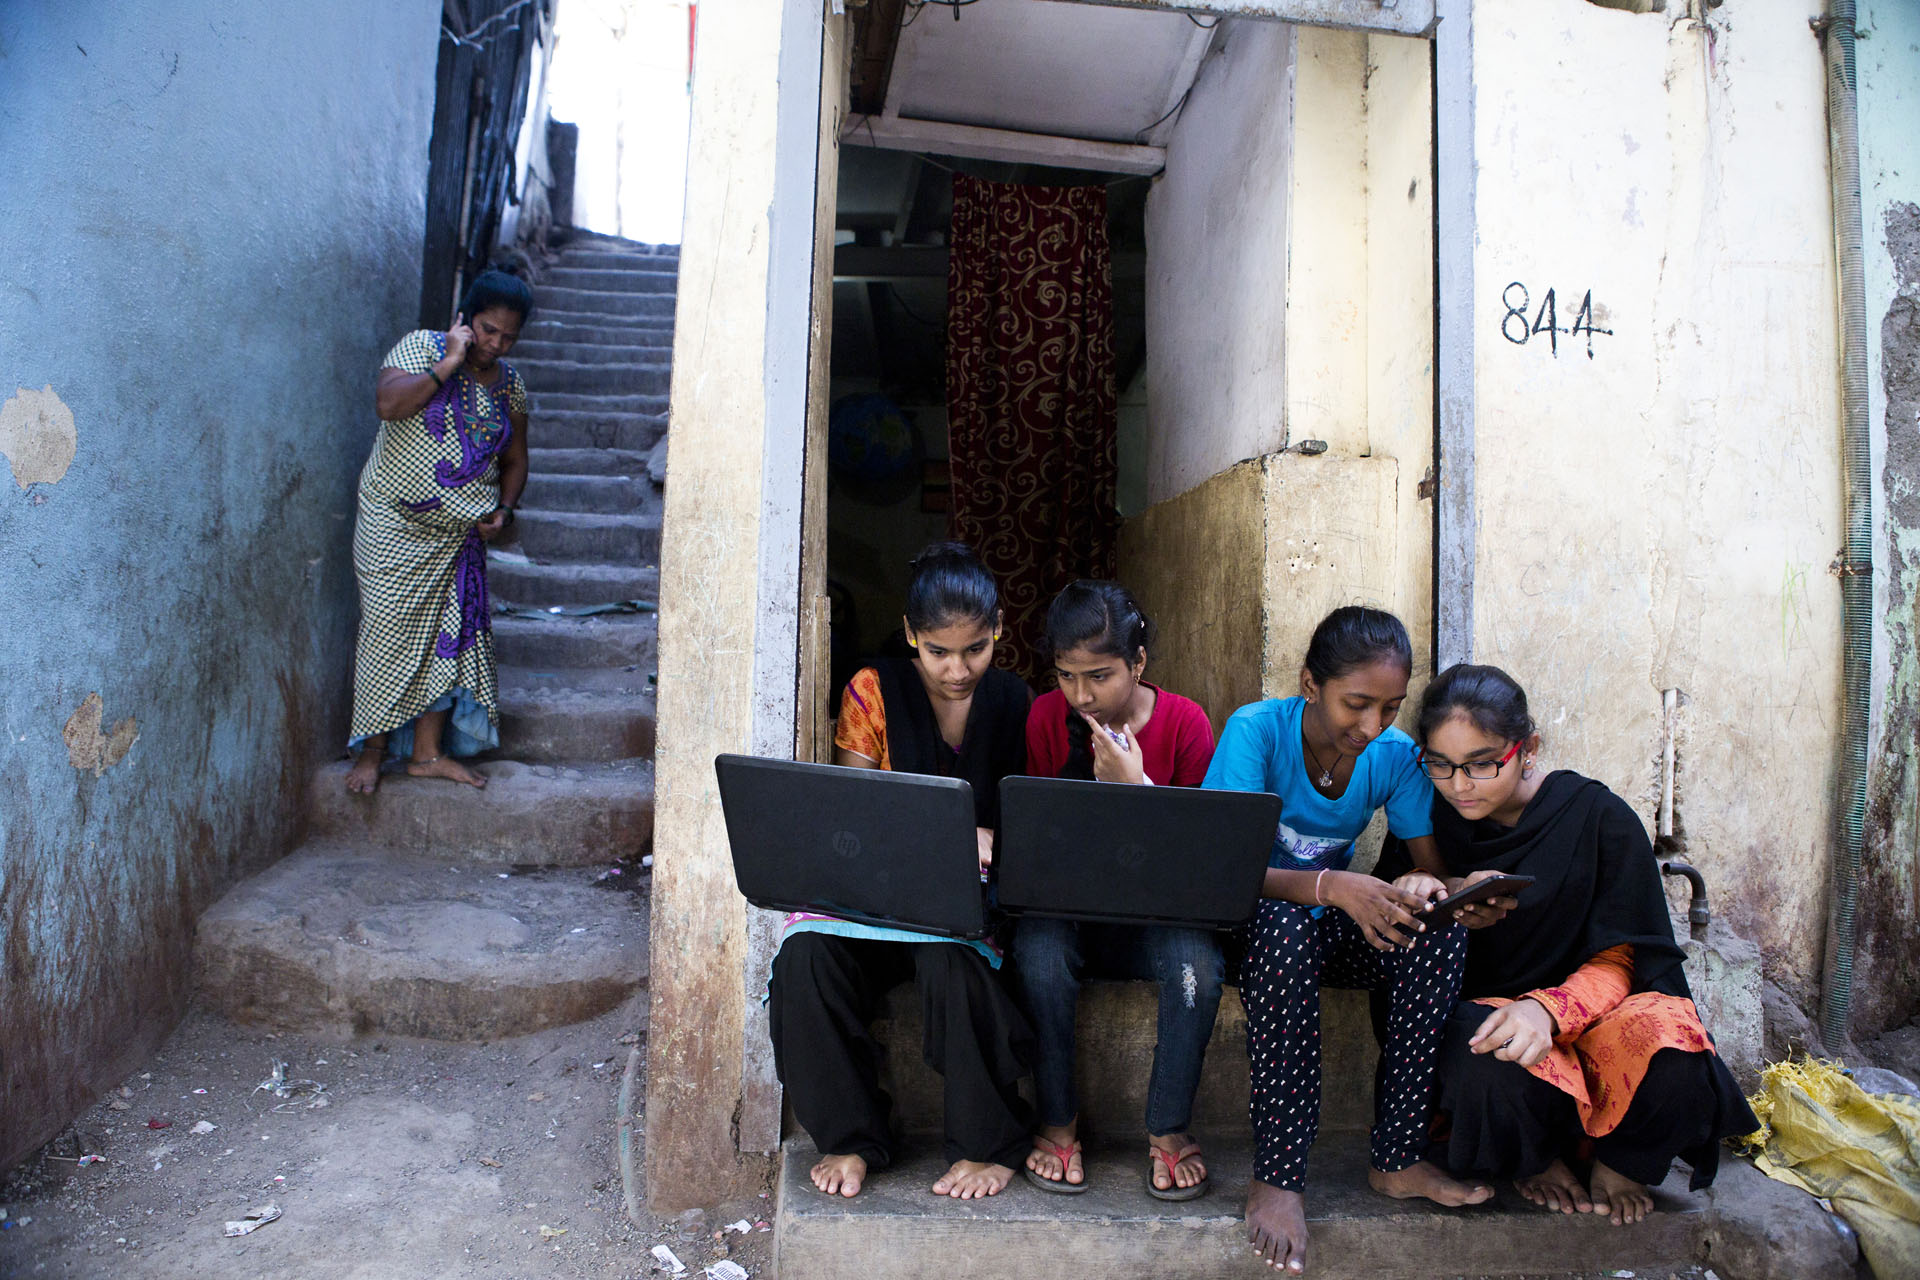 The tech girls of Mumbai